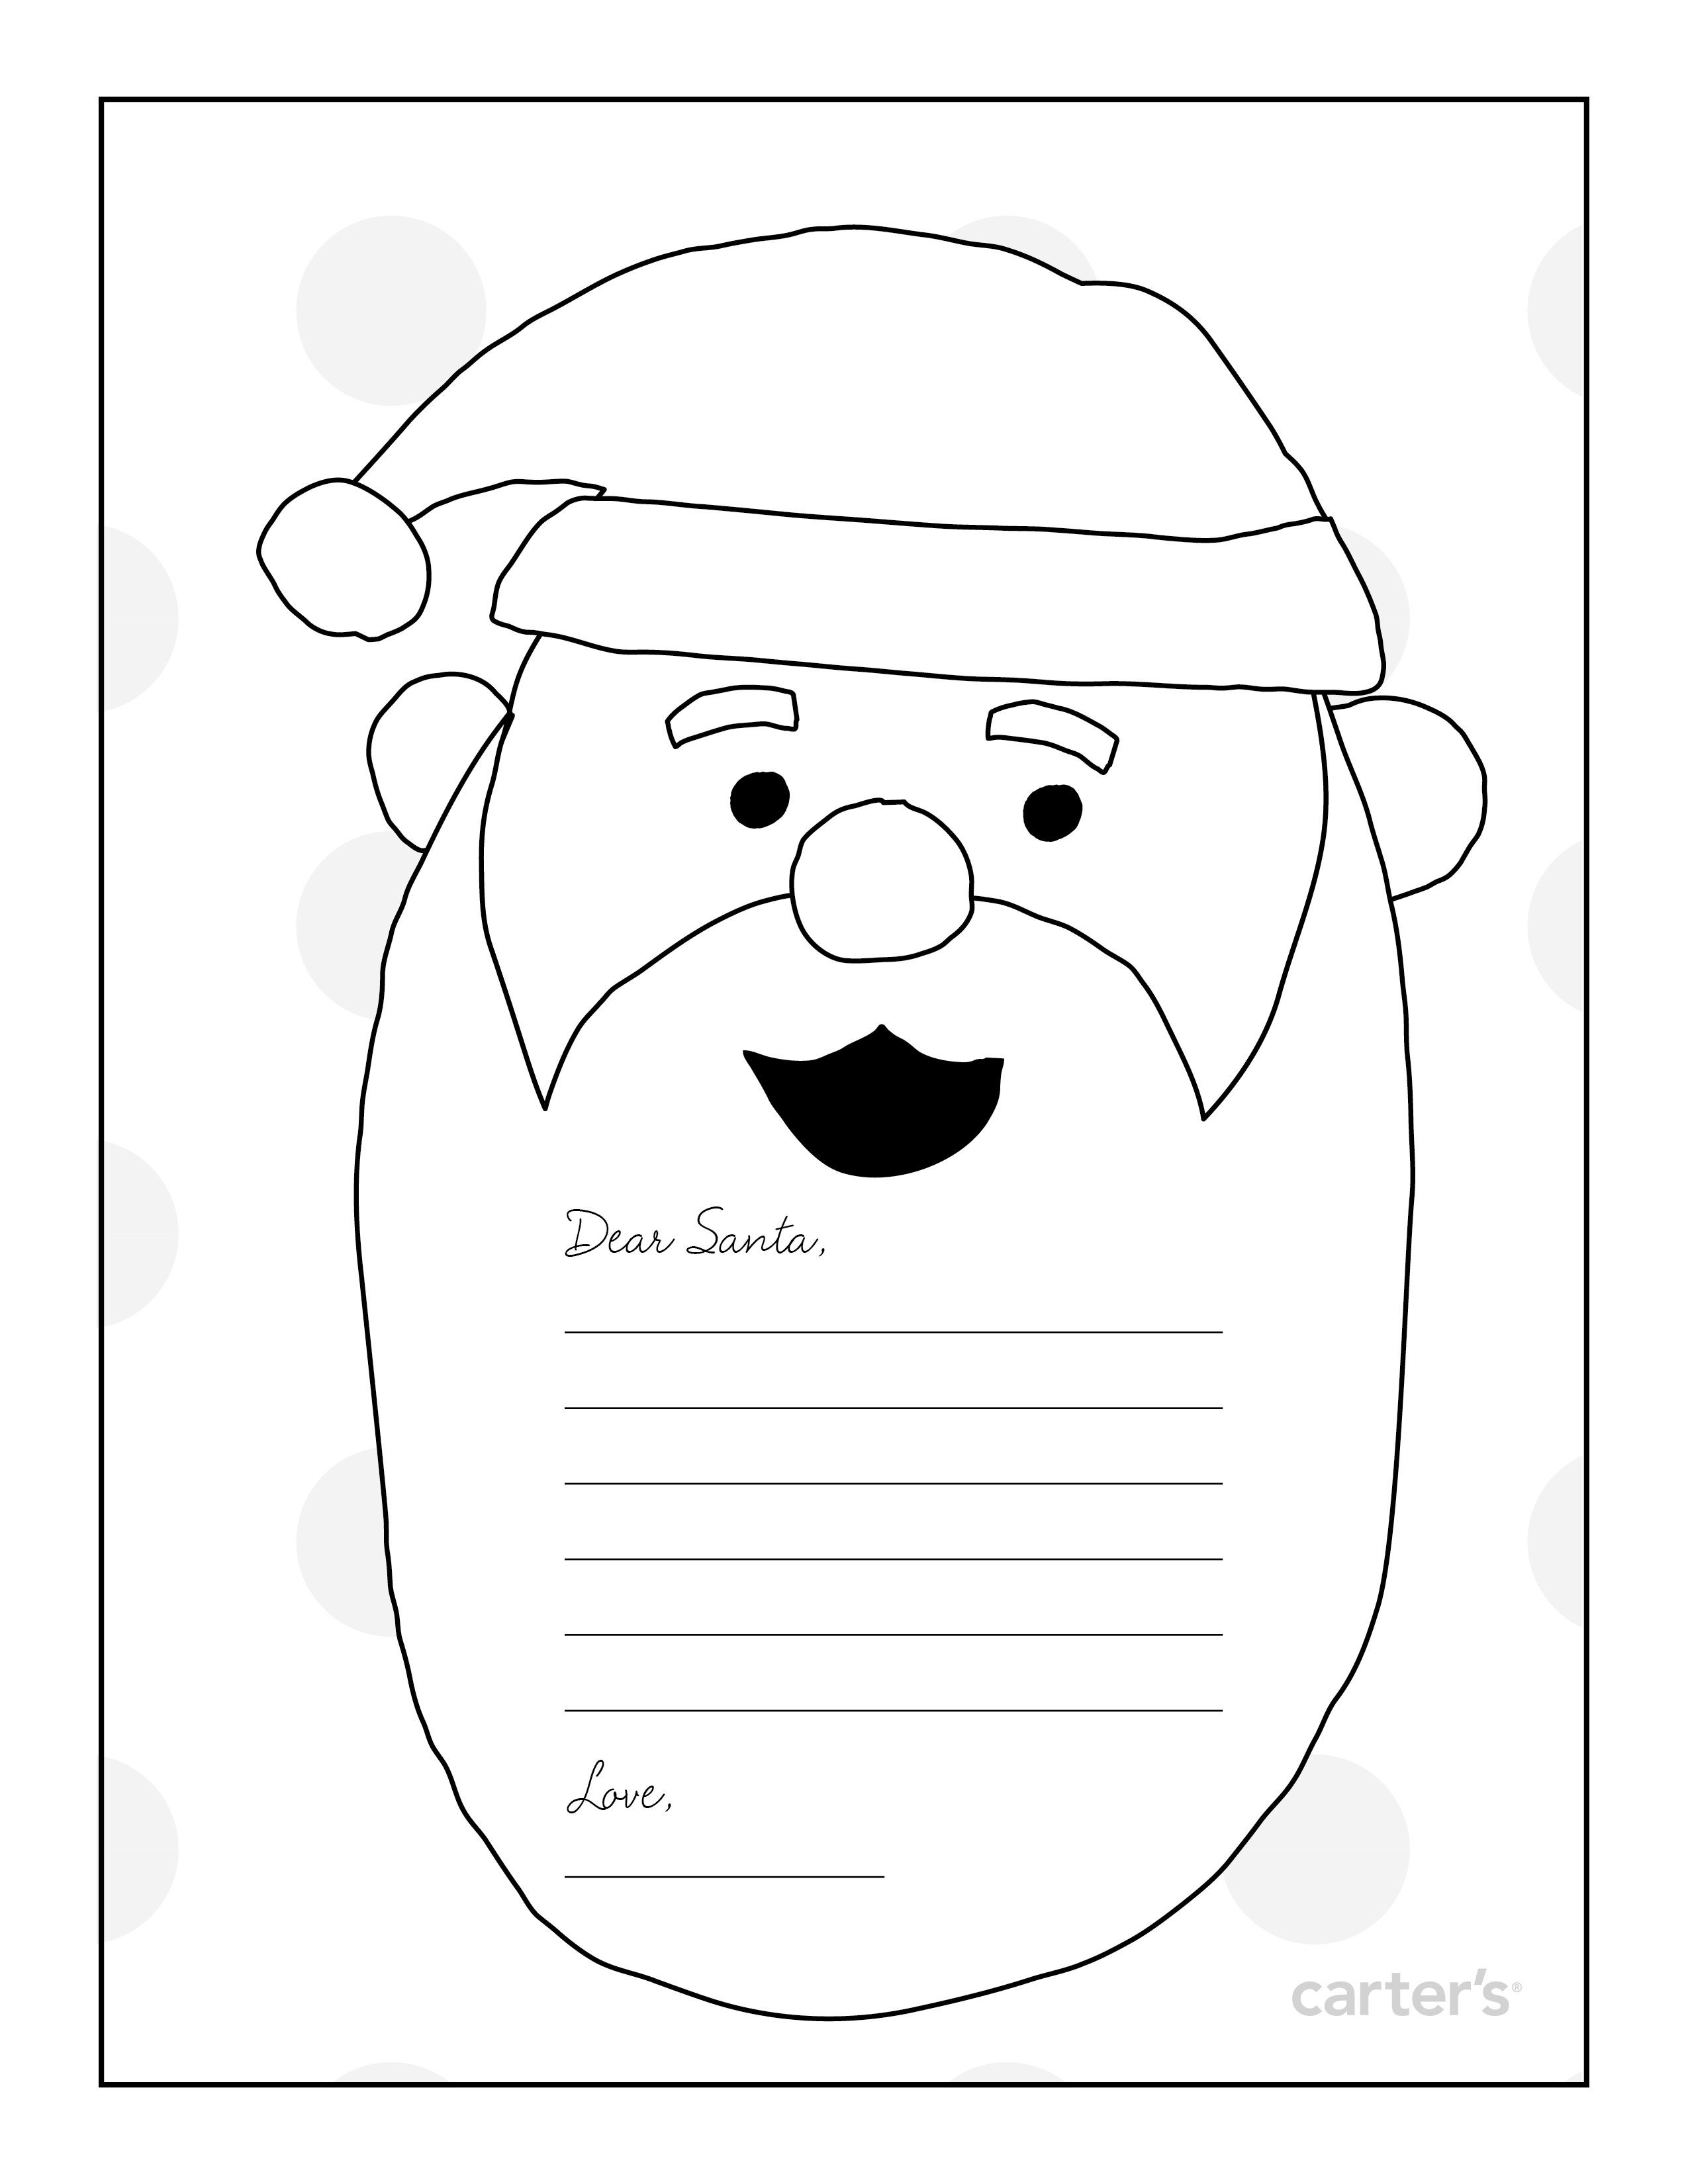 Dear Santa Coloring With ColoringPage Christmas Pinterest Colors Unusual Letter